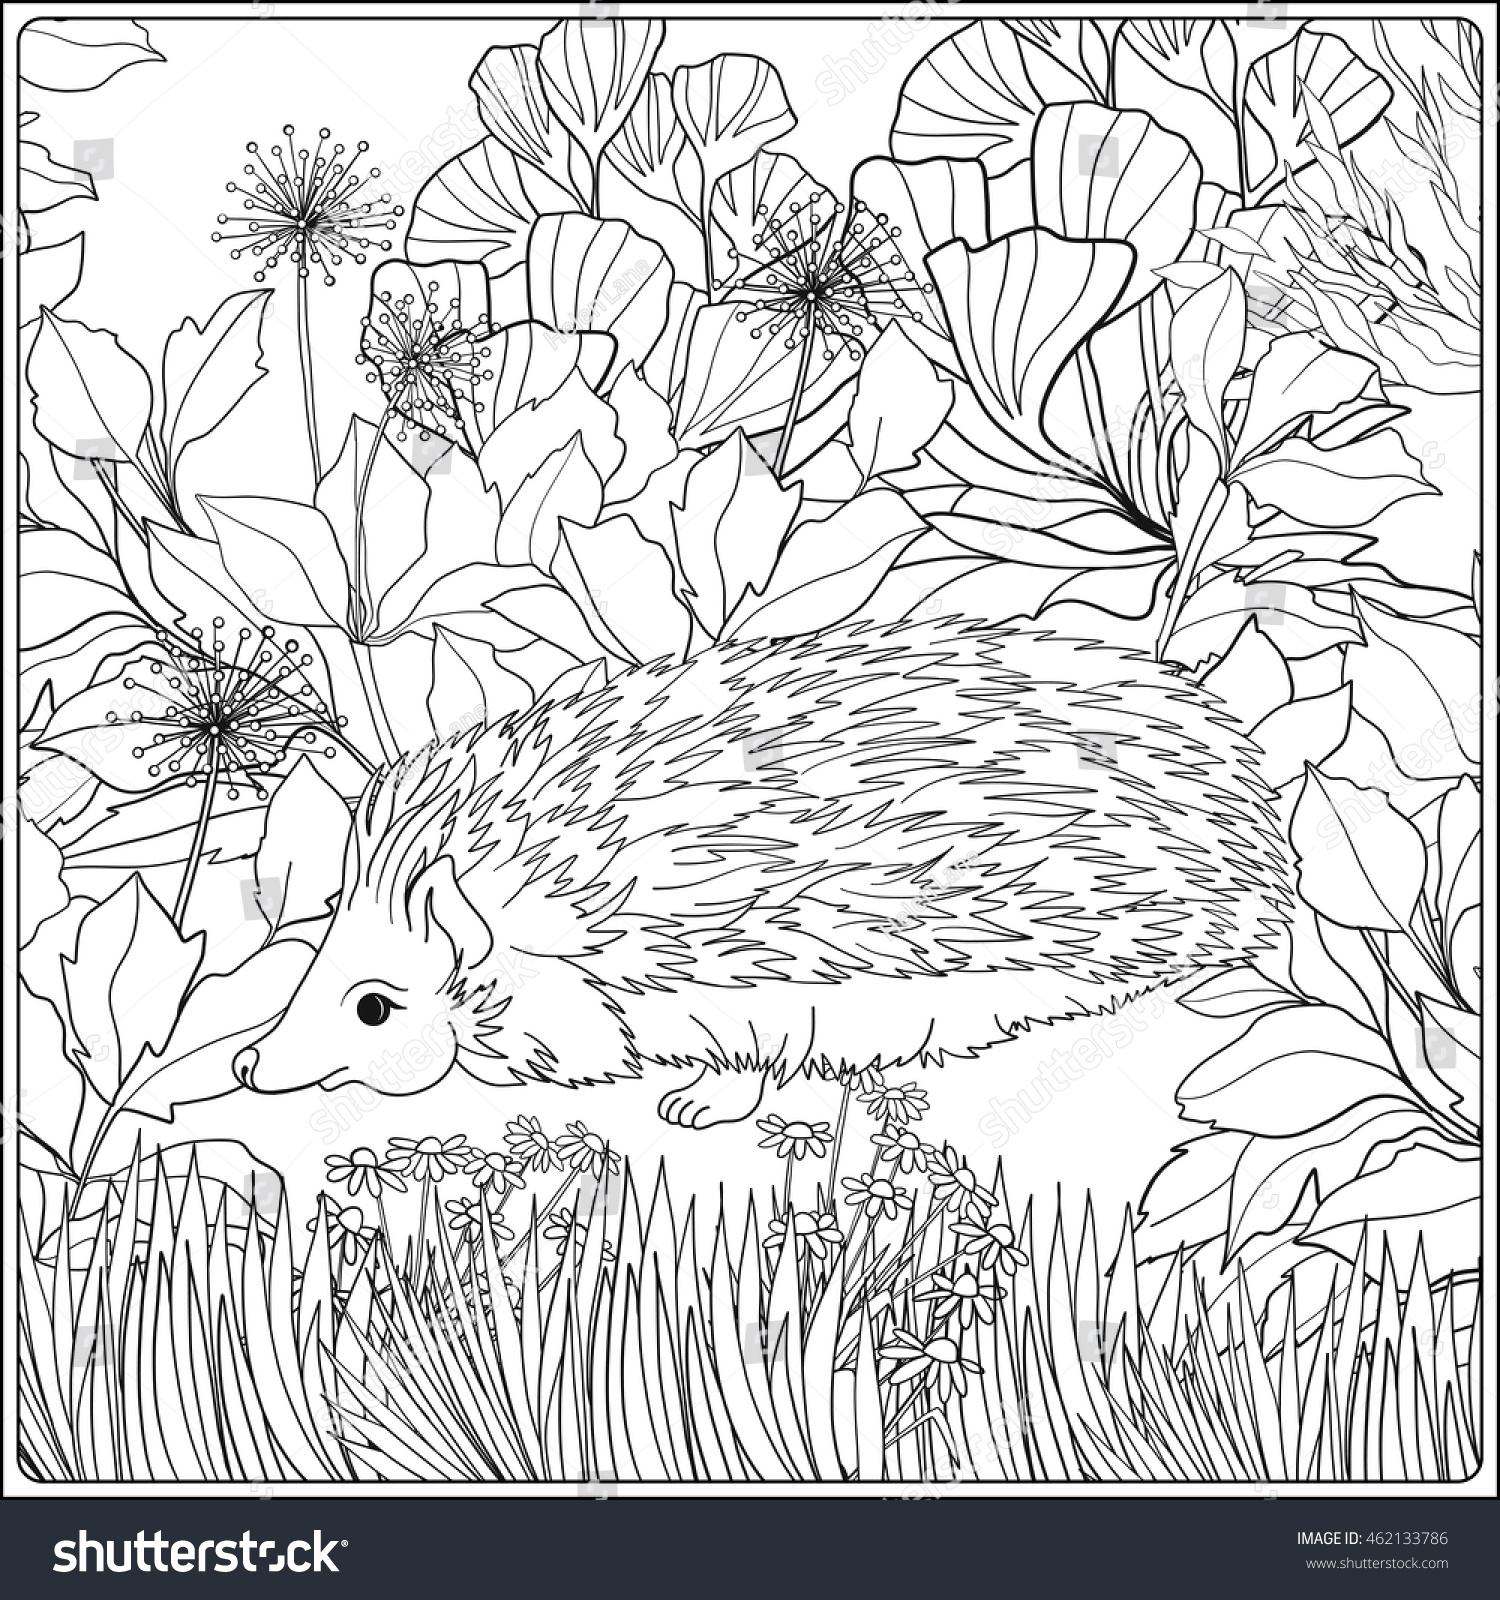 coloring page lovely hedgehog garden coloring stock vector